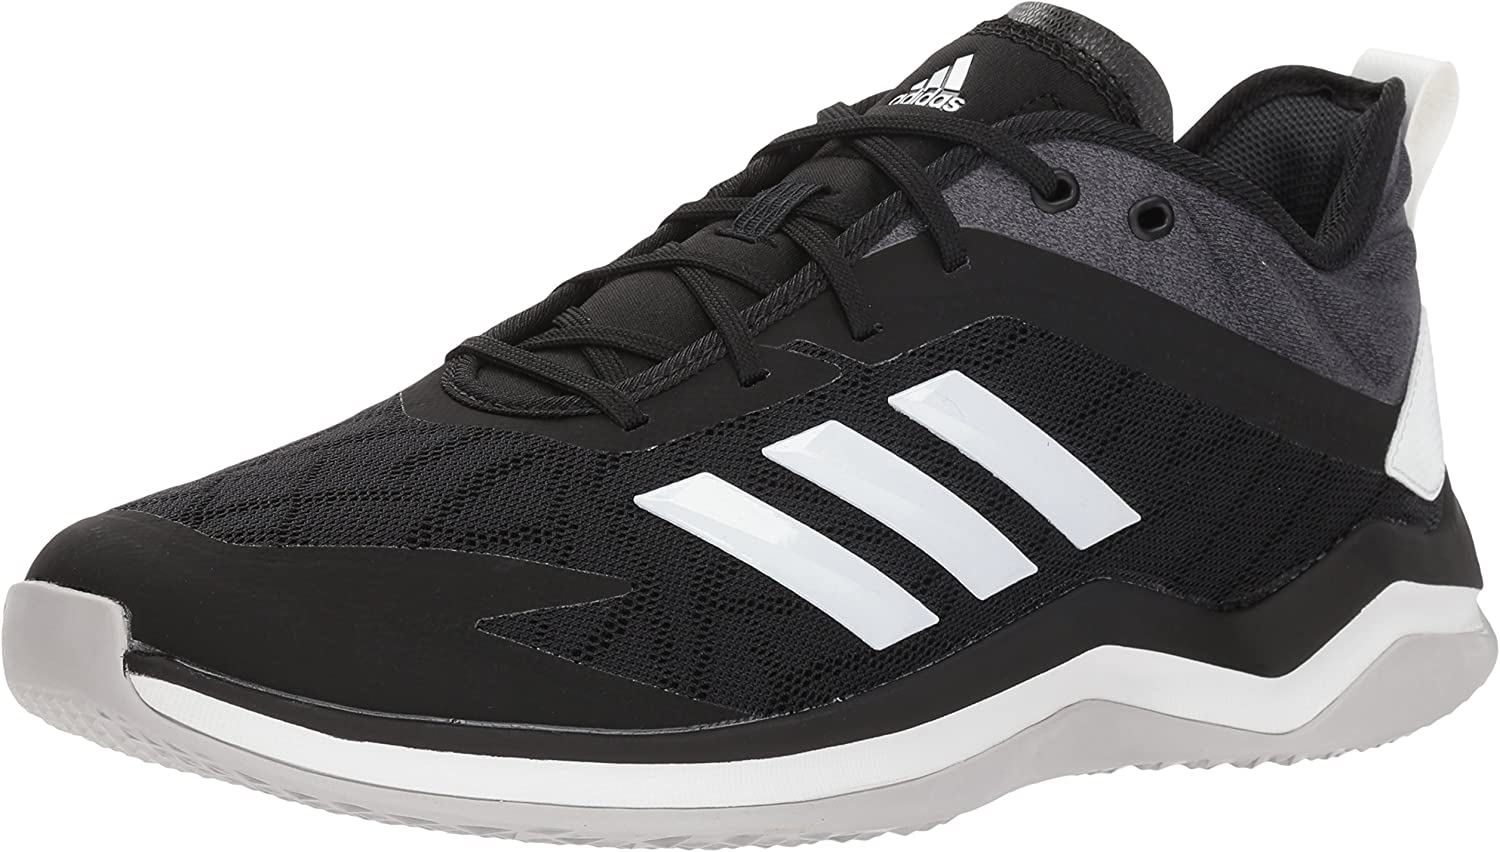 Adidas Men's Speed Trainer 4 Baseball shoes, Black Crystal White Carbon, 10 M US